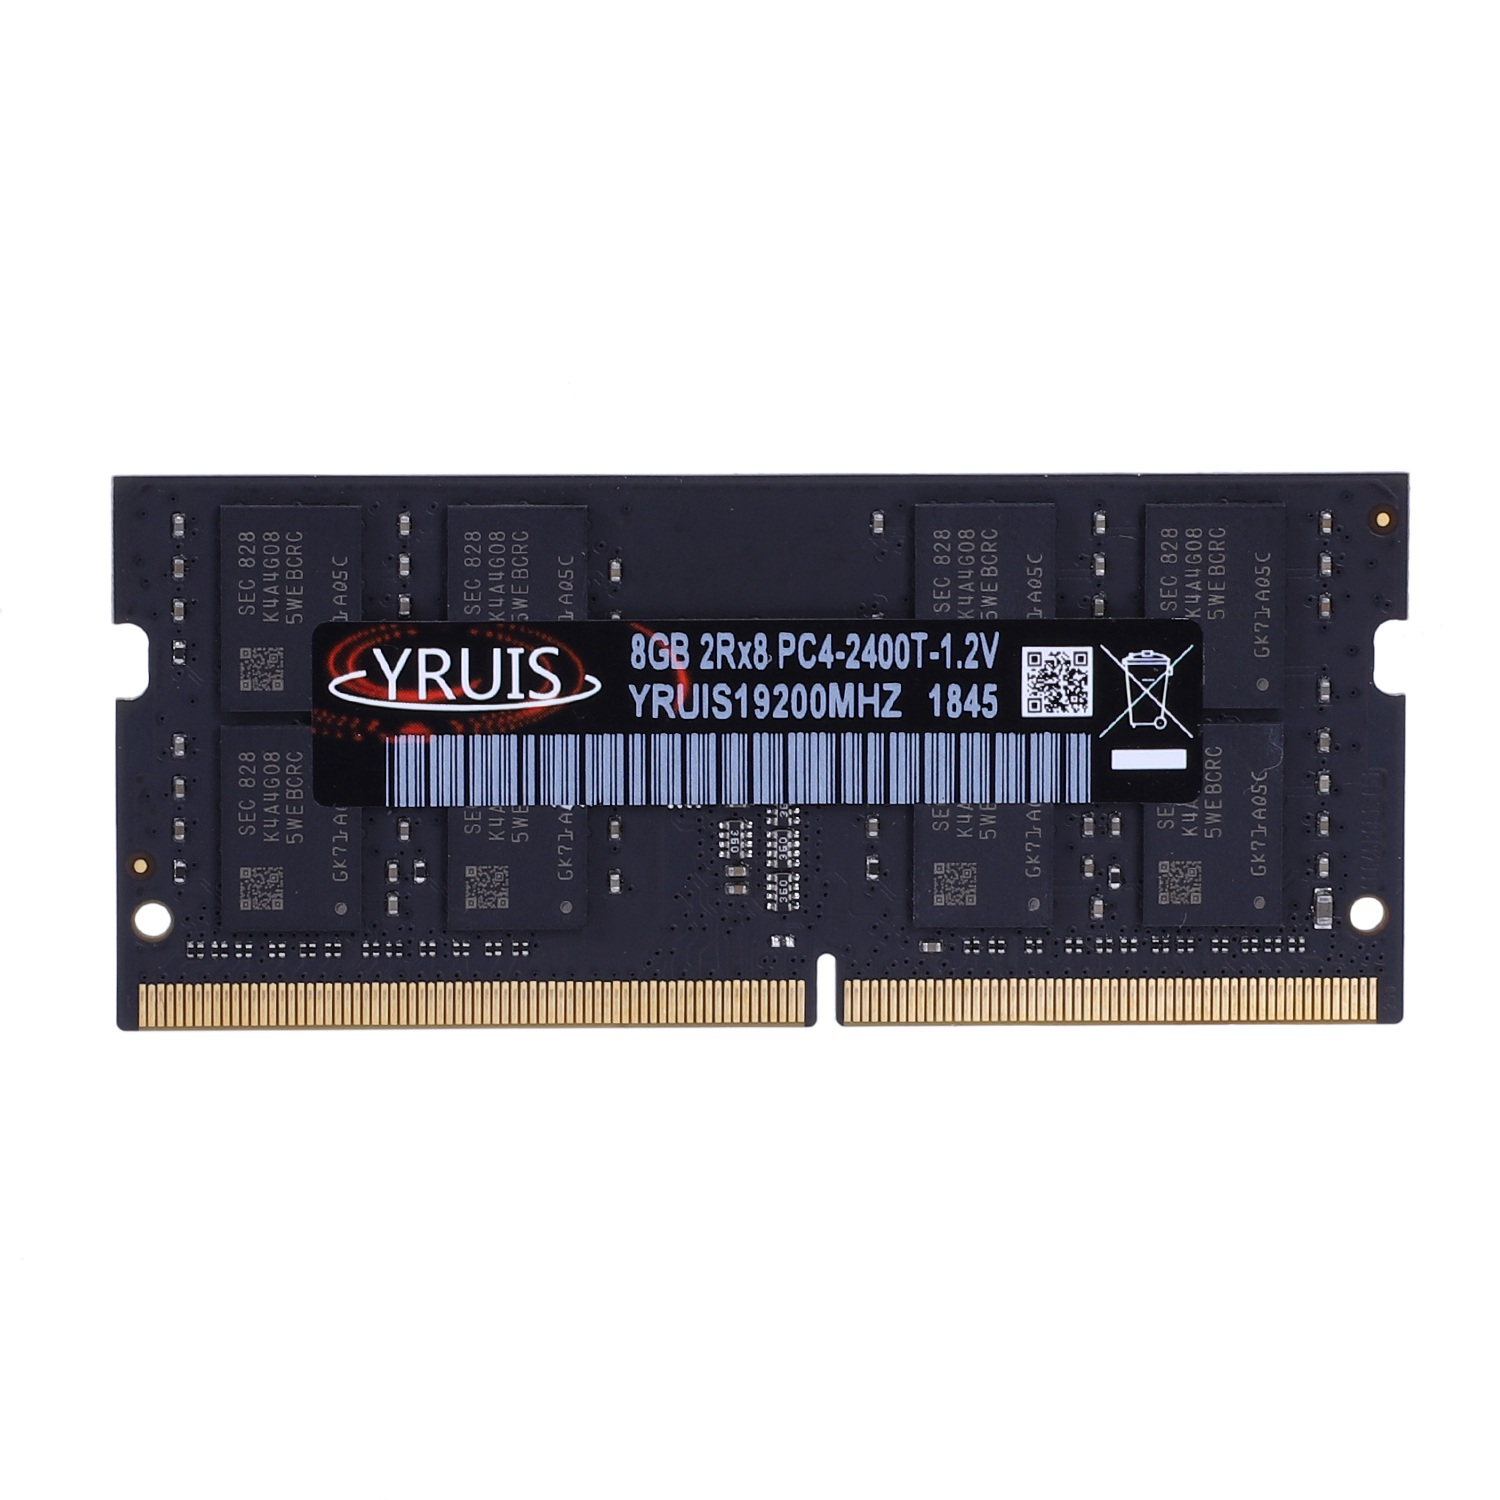 Yruis <font><b>Ddr4</b></font> 4G 8Gb 2400Mhz <font><b>Ram</b></font> Sodimm Laptop Memory Support <font><b>Memoria</b></font> <font><b>Ddr4</b></font> Notebook(1.2V) image